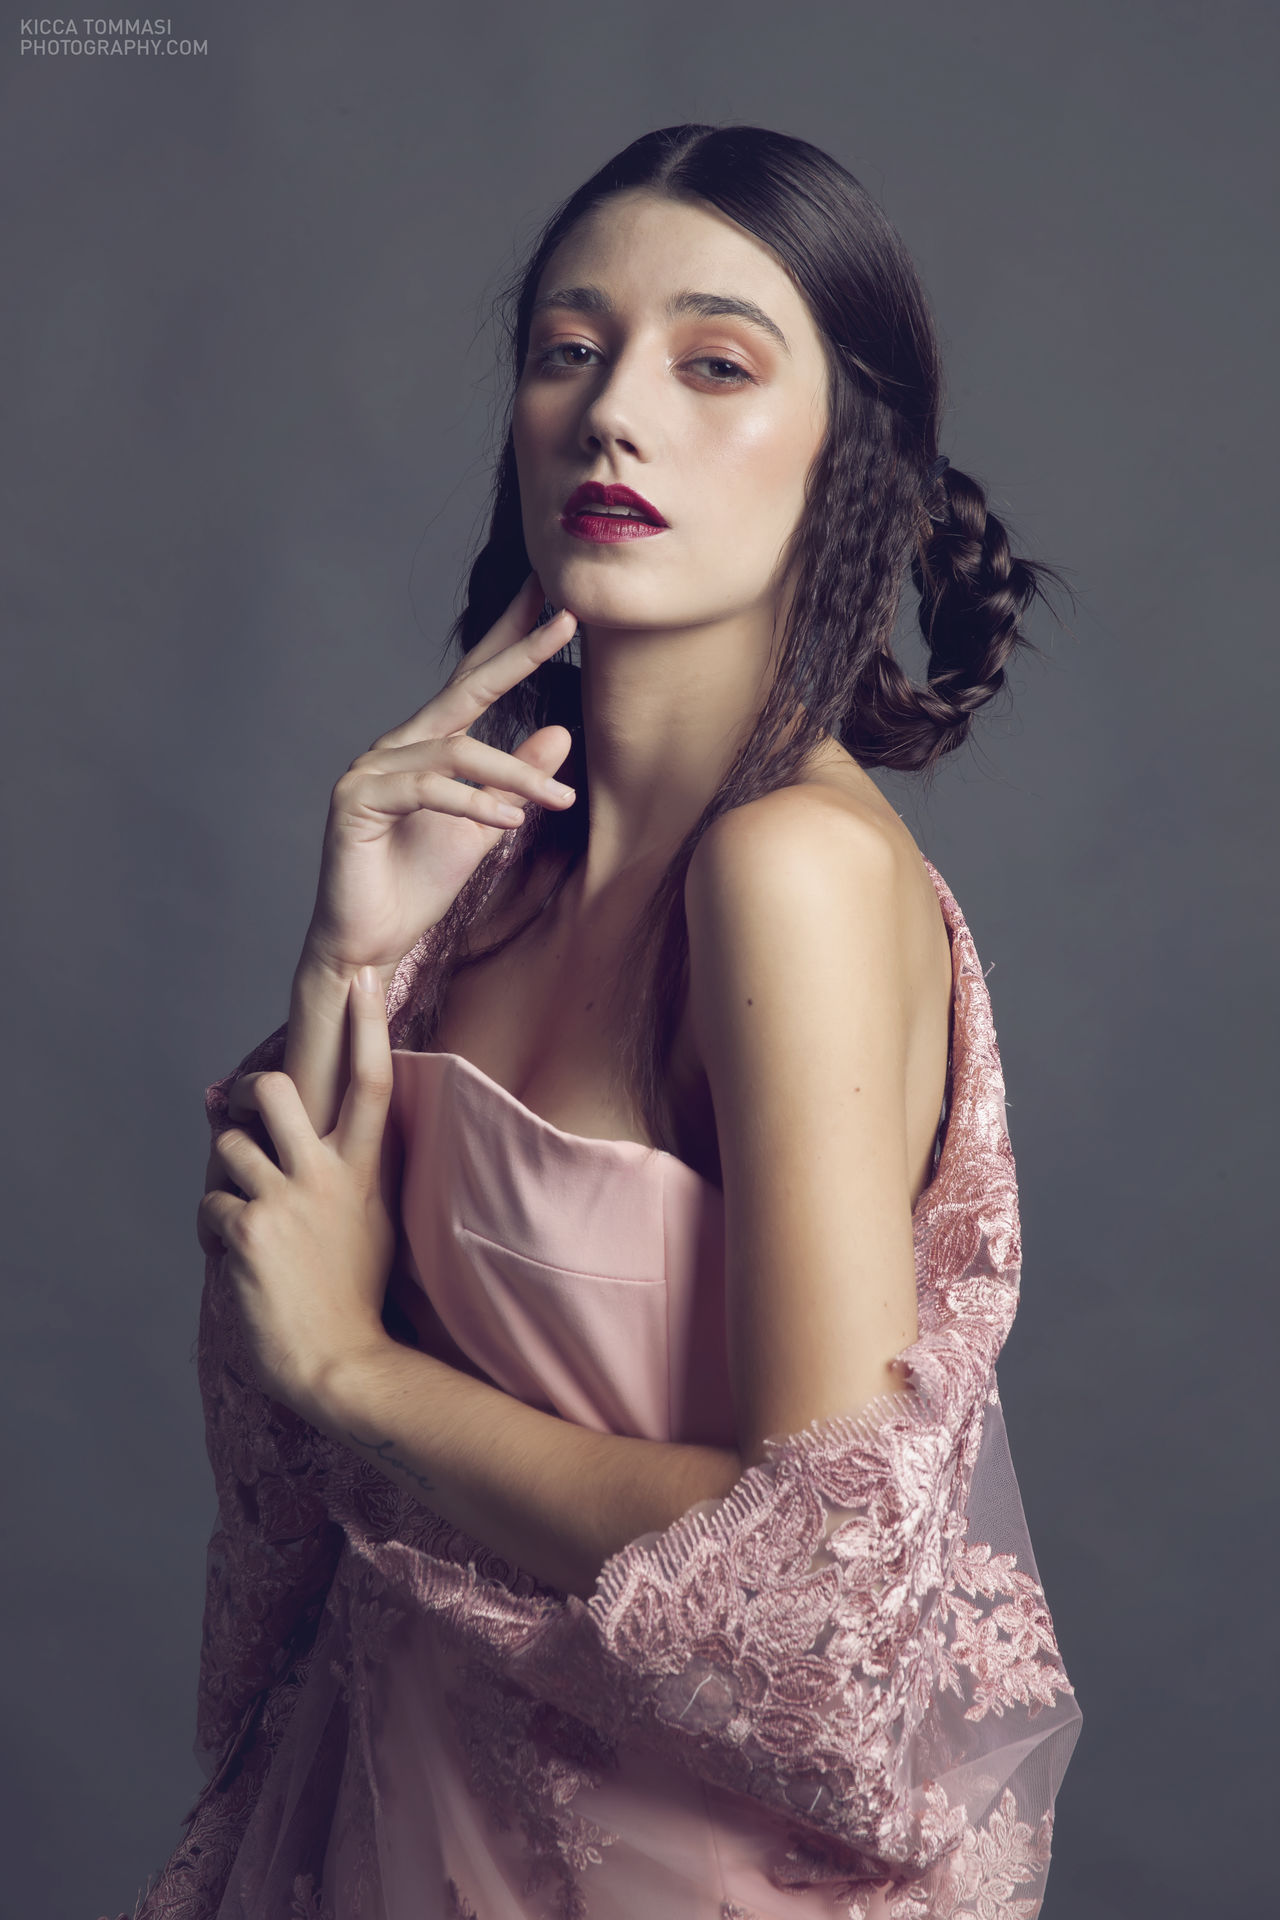 Lara. Lady of Millennial Pink Beautiful Woman Evening Gown Glamour Lace - Textile Millennial Pink One Young Woman Only Portrait Portrait Of A Woman Studio Photography Studio Shot